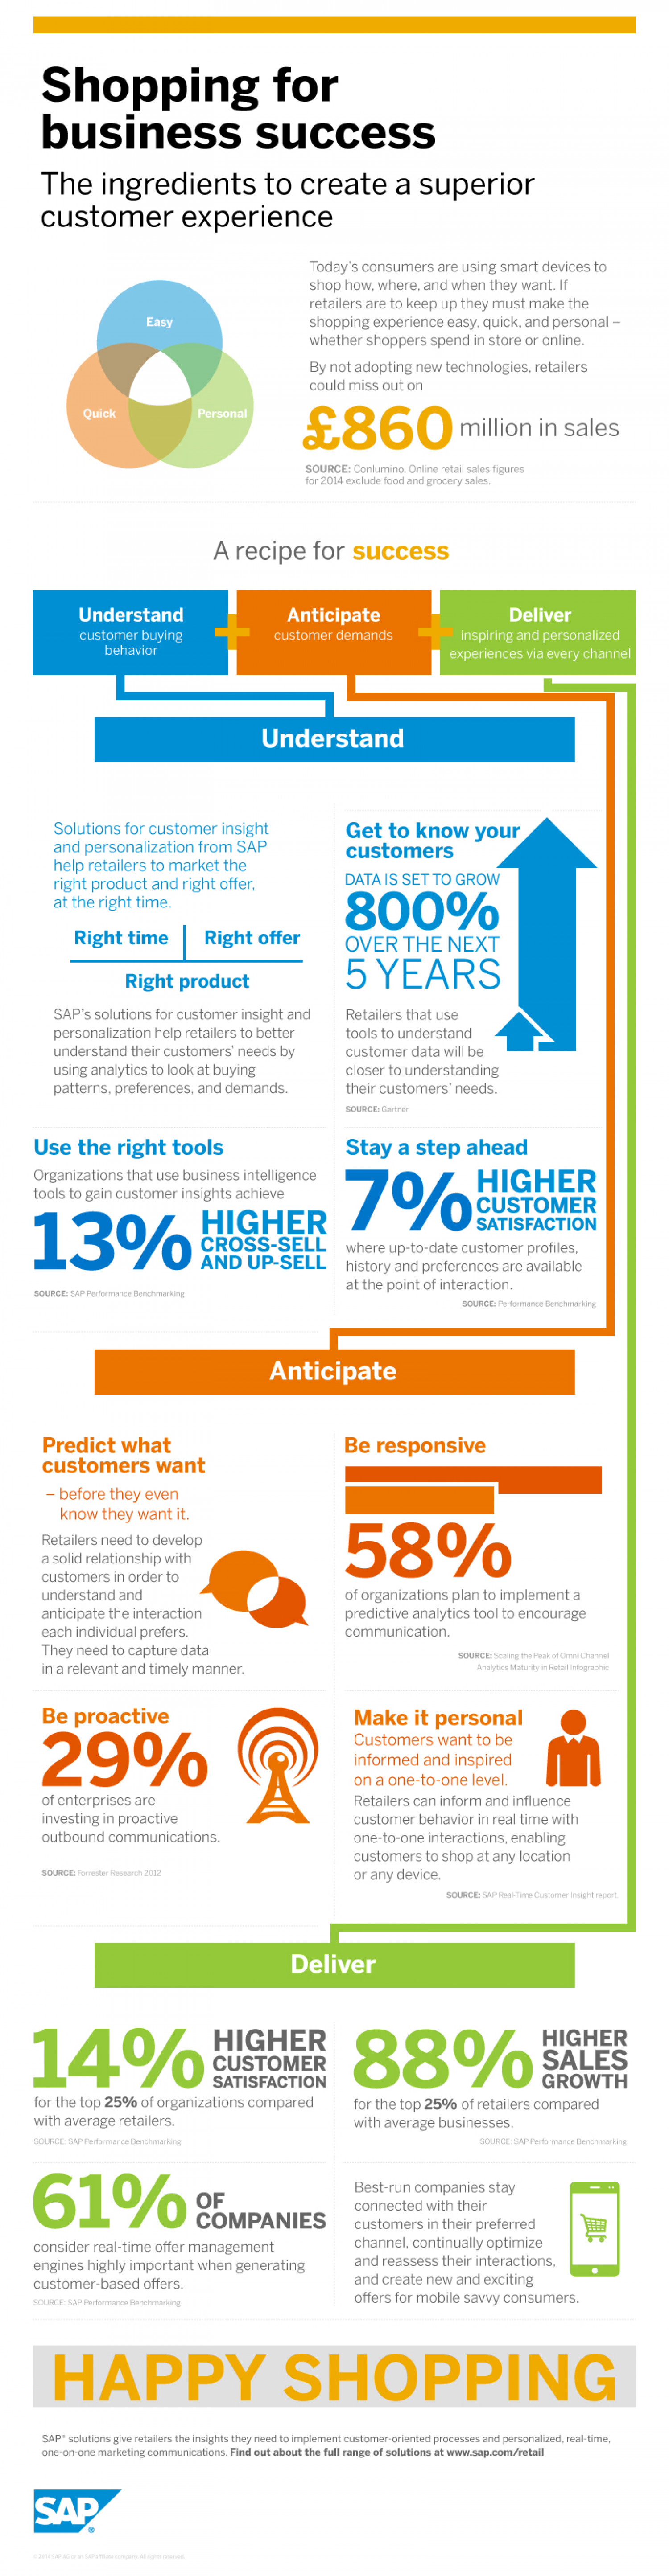 Shopping for Business Success Infographic